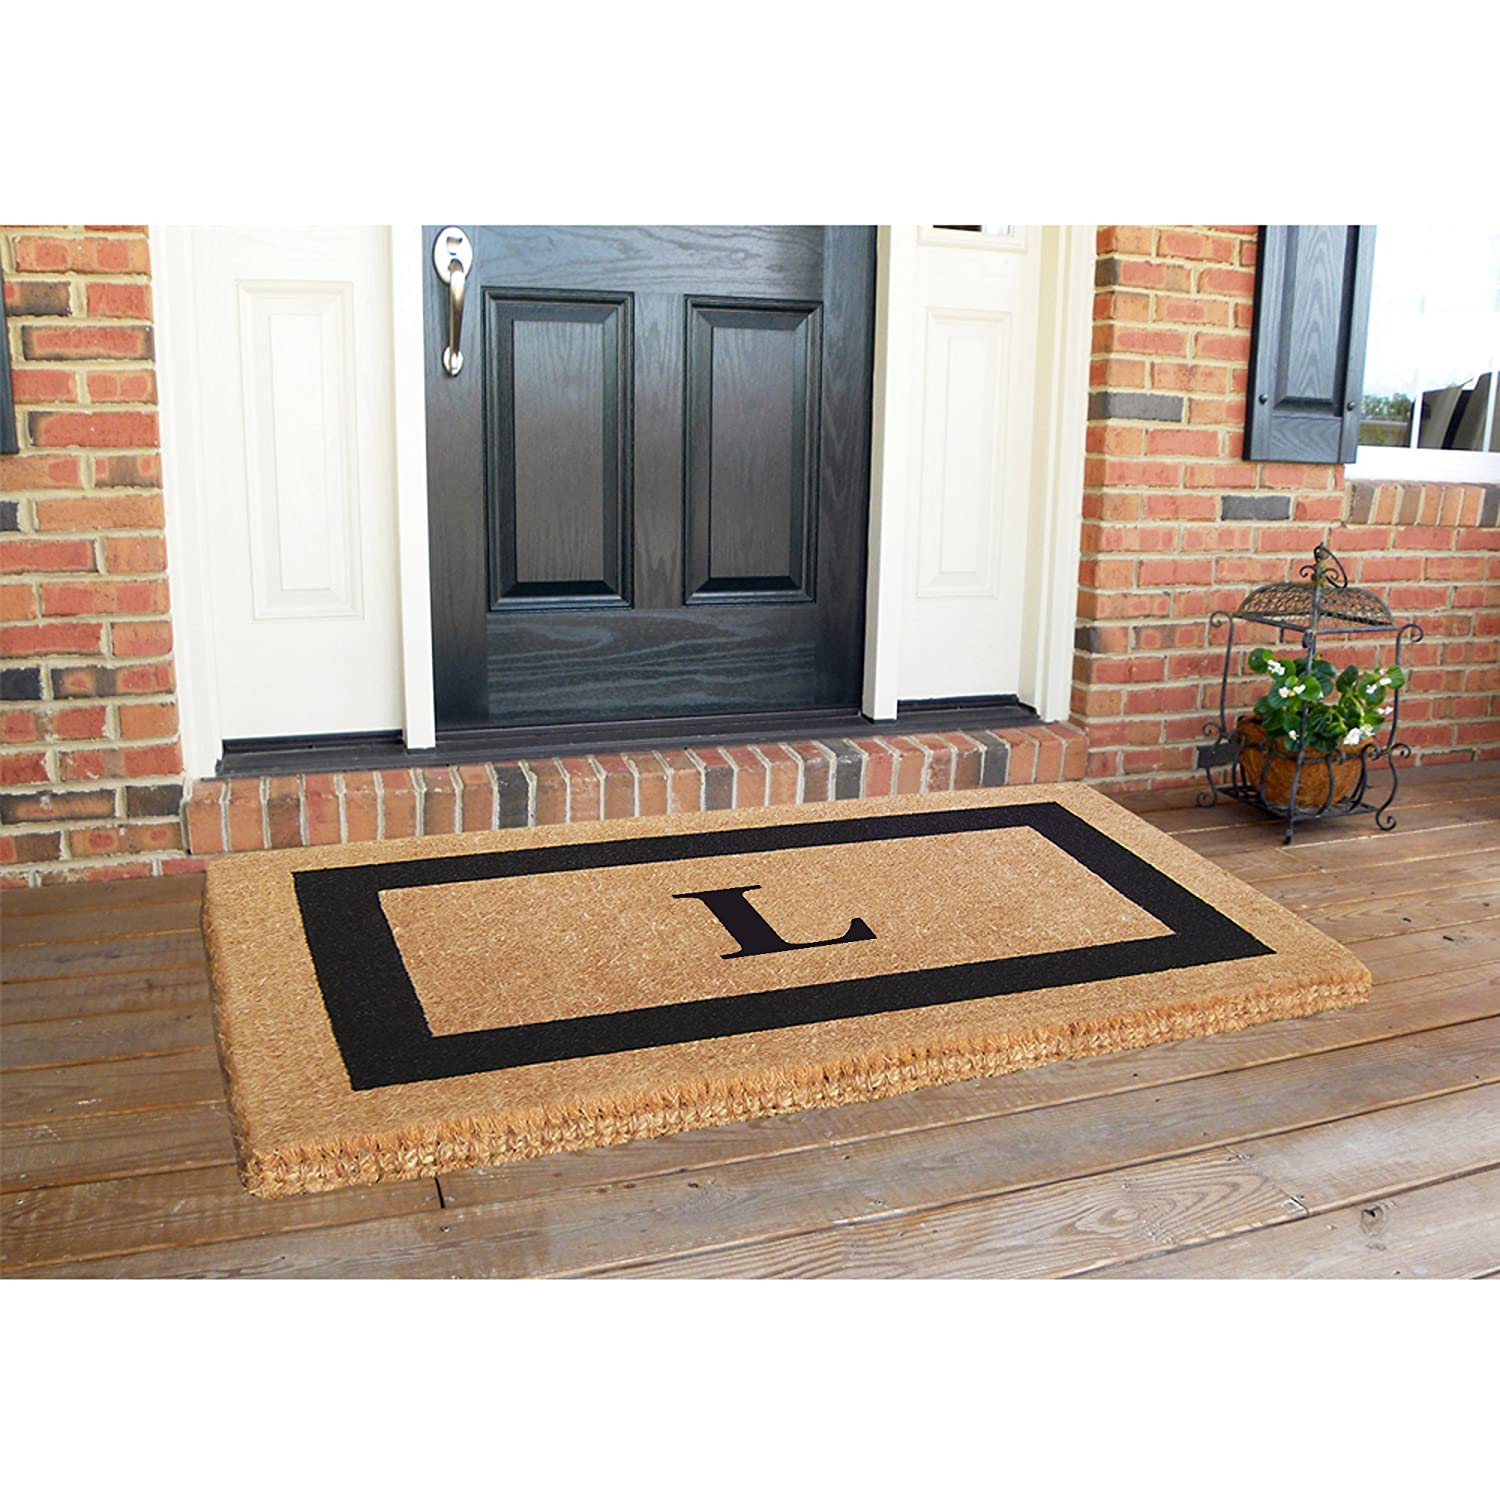 Heavy Duty 38 x 60 Coco Mat Black Single Picture Frame Monogrammed H